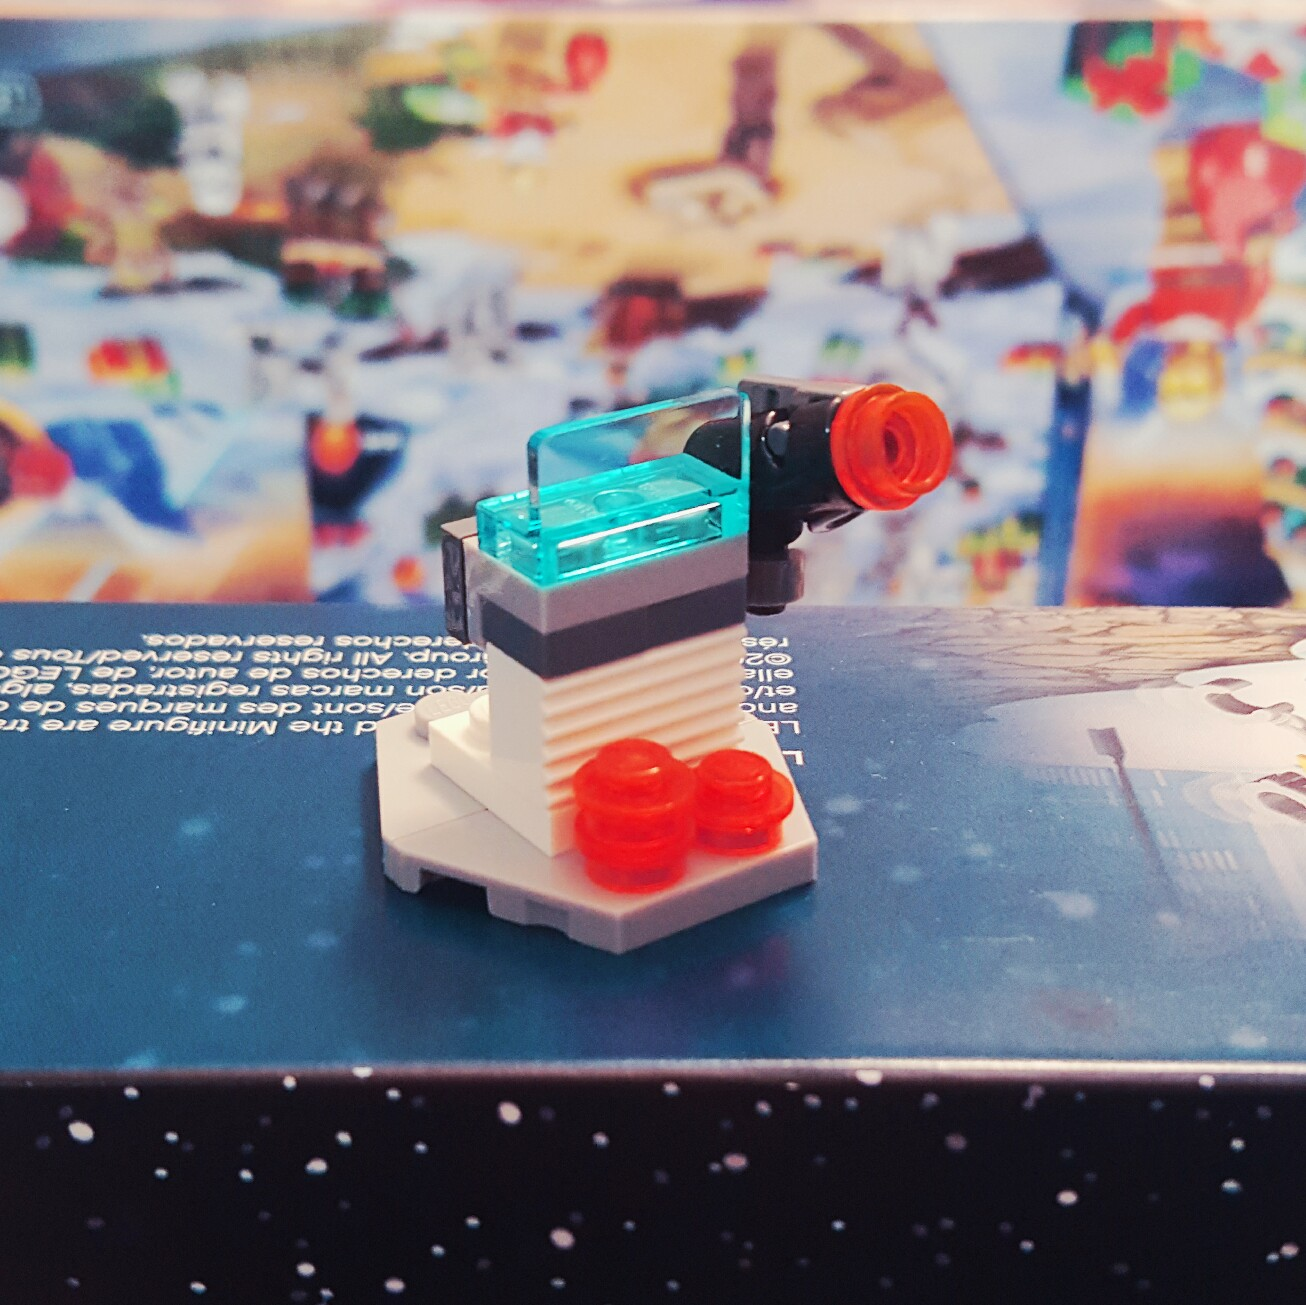 Day 21 Hoth Stud Shooter from LEGO Star Wars Advent Calendar